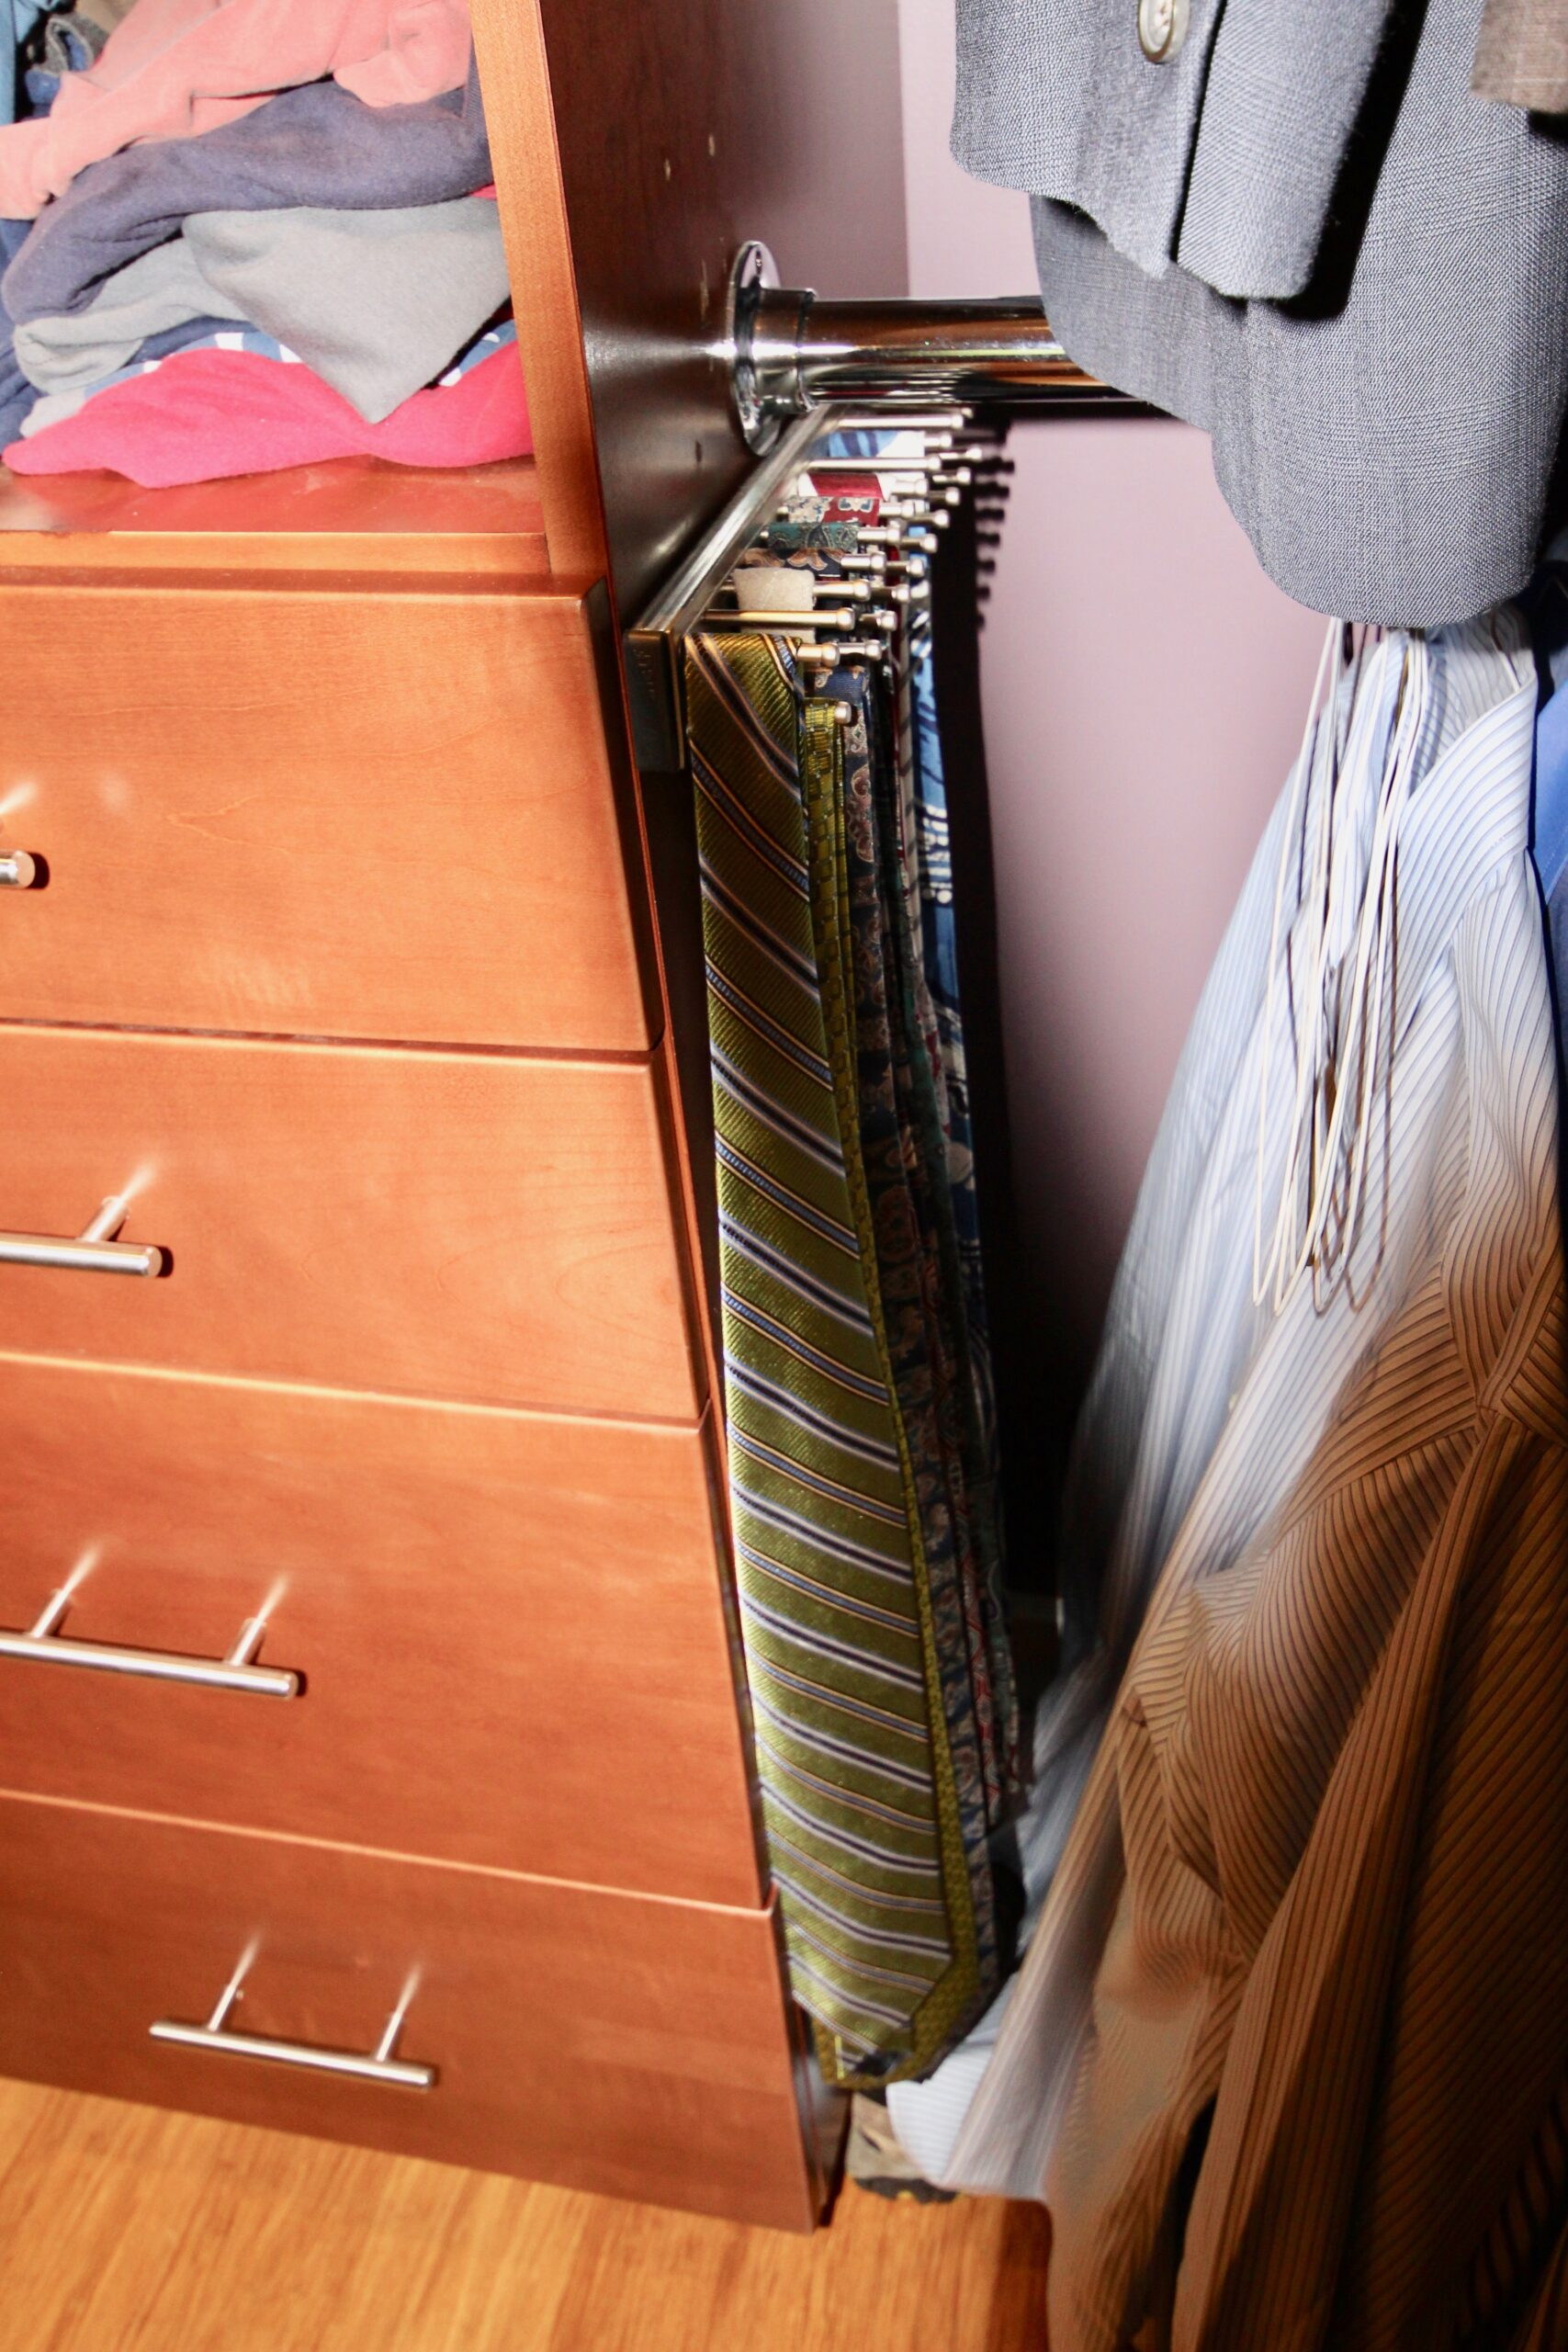 PULLOUT TIE RACK